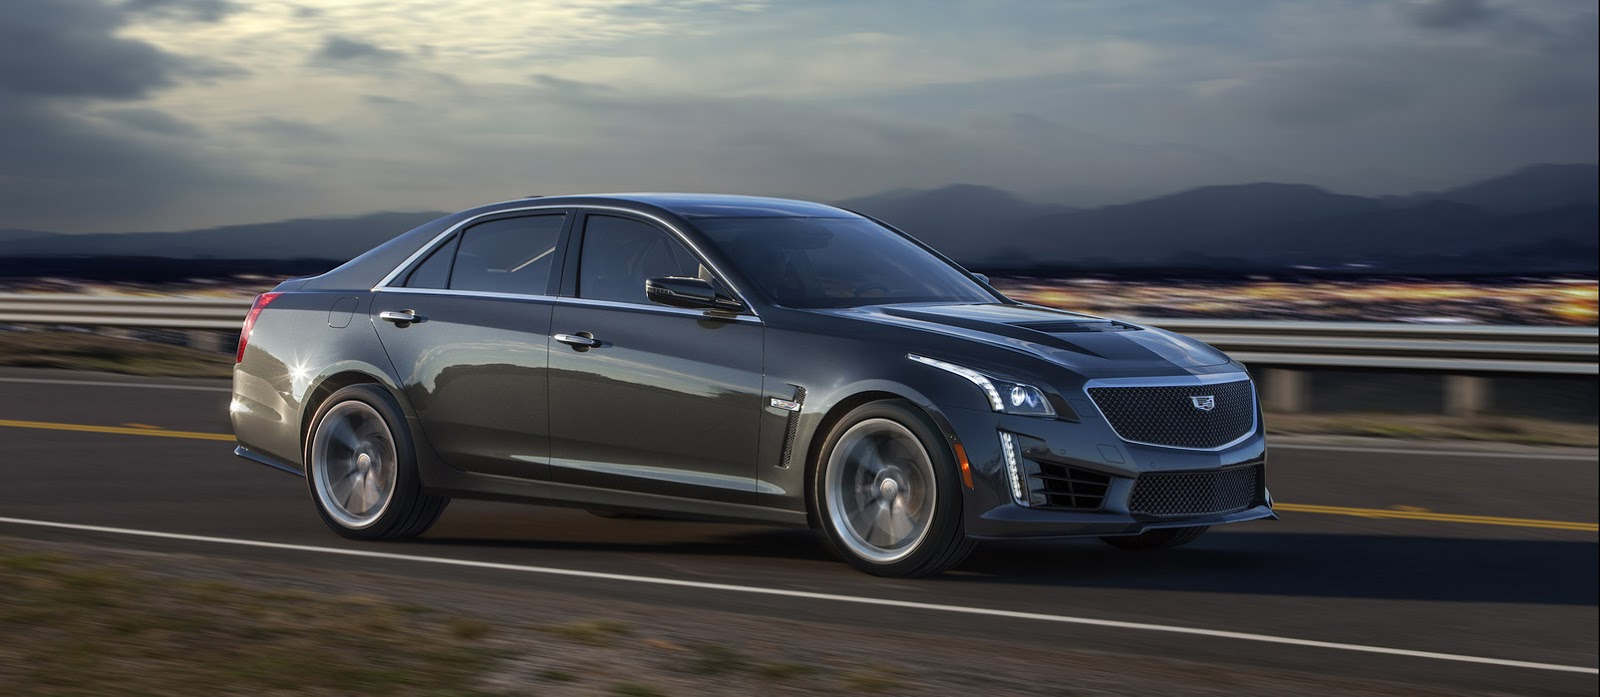 2018 cadillac diesel. plain 2018 photo gallery on 2018 cadillac diesel r